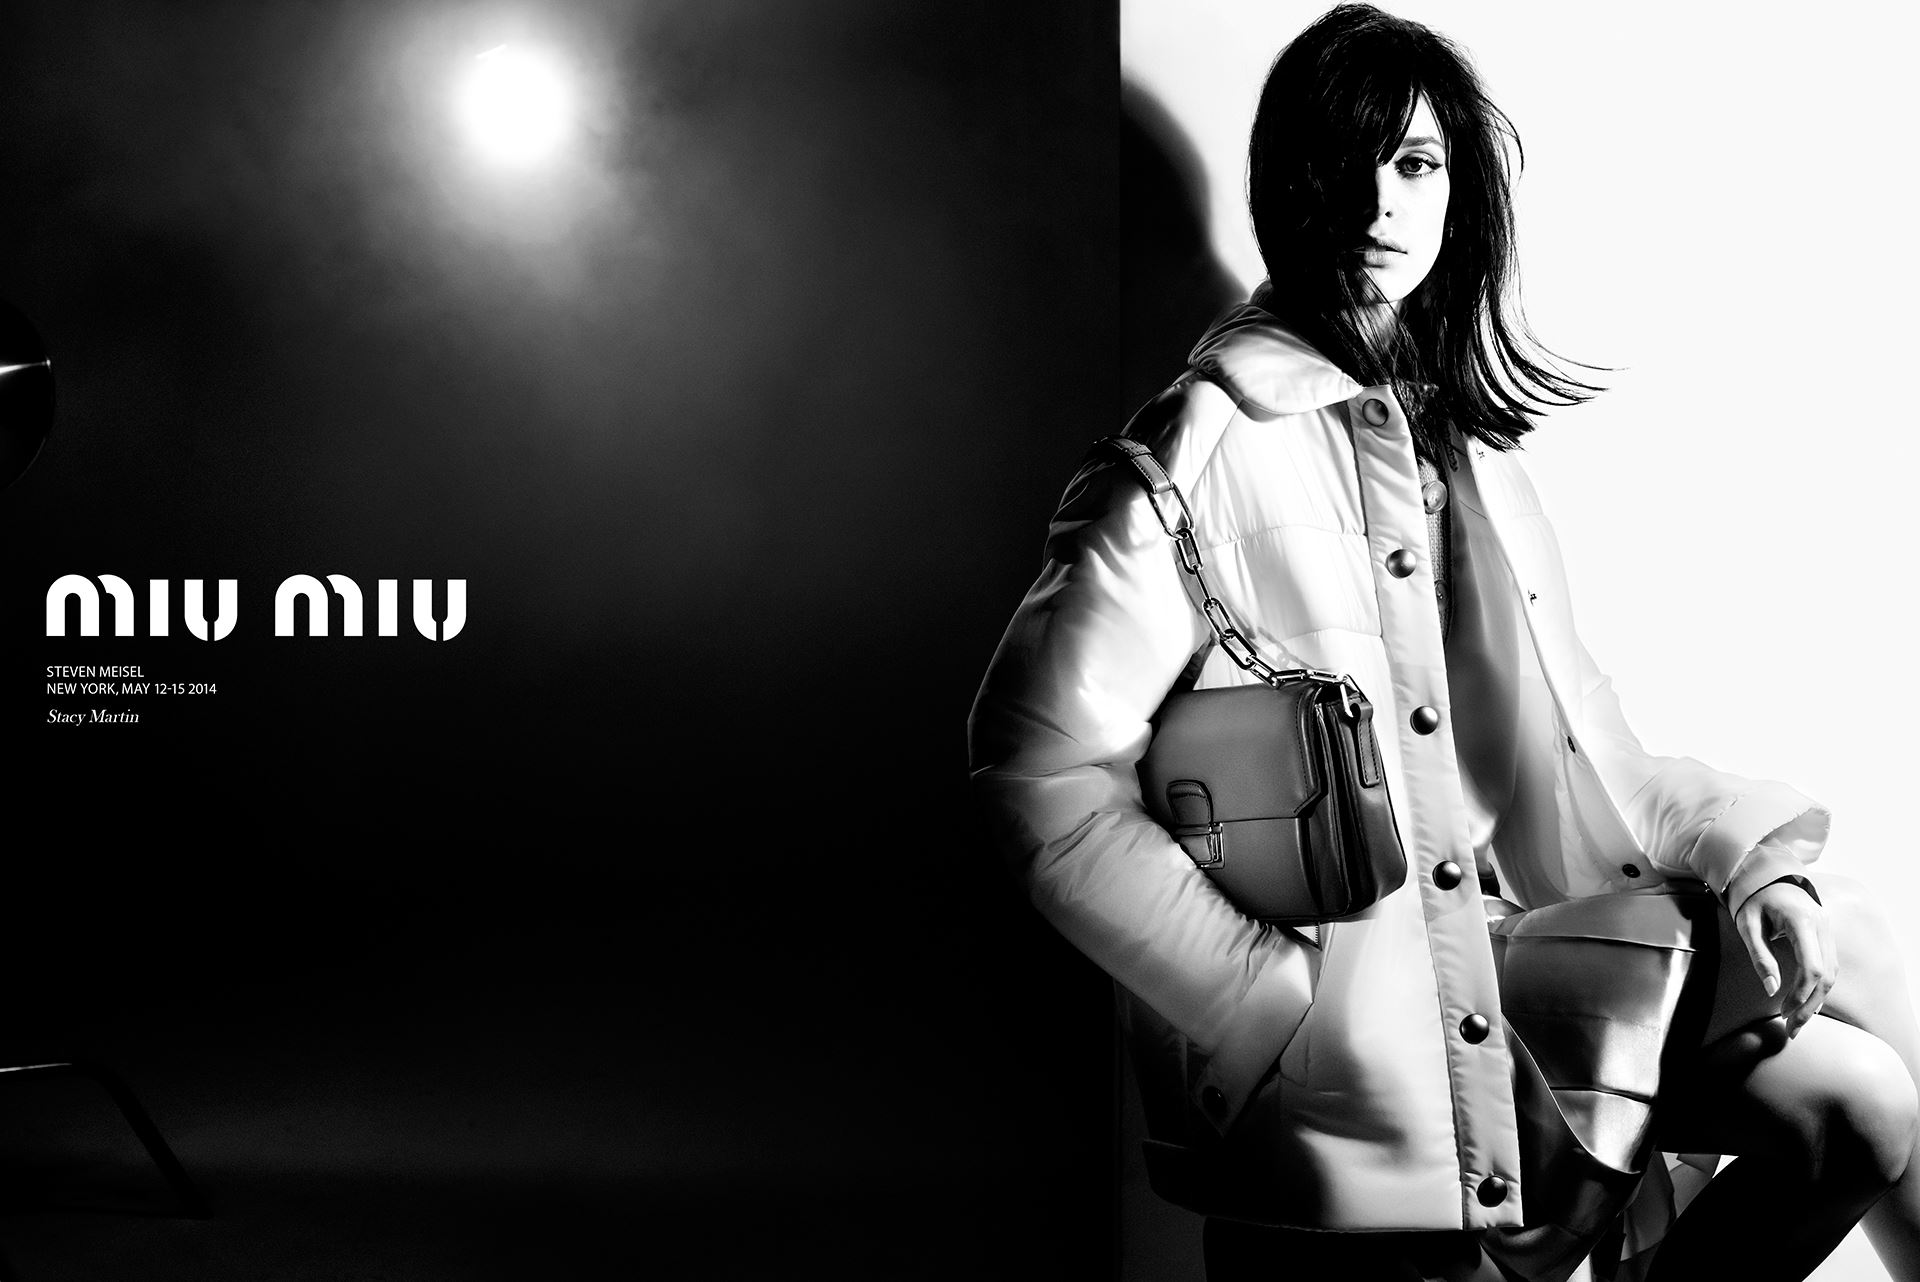 stacy-martin-by-steven-meisel-for-miu-miu-fall-winter-2014-2015